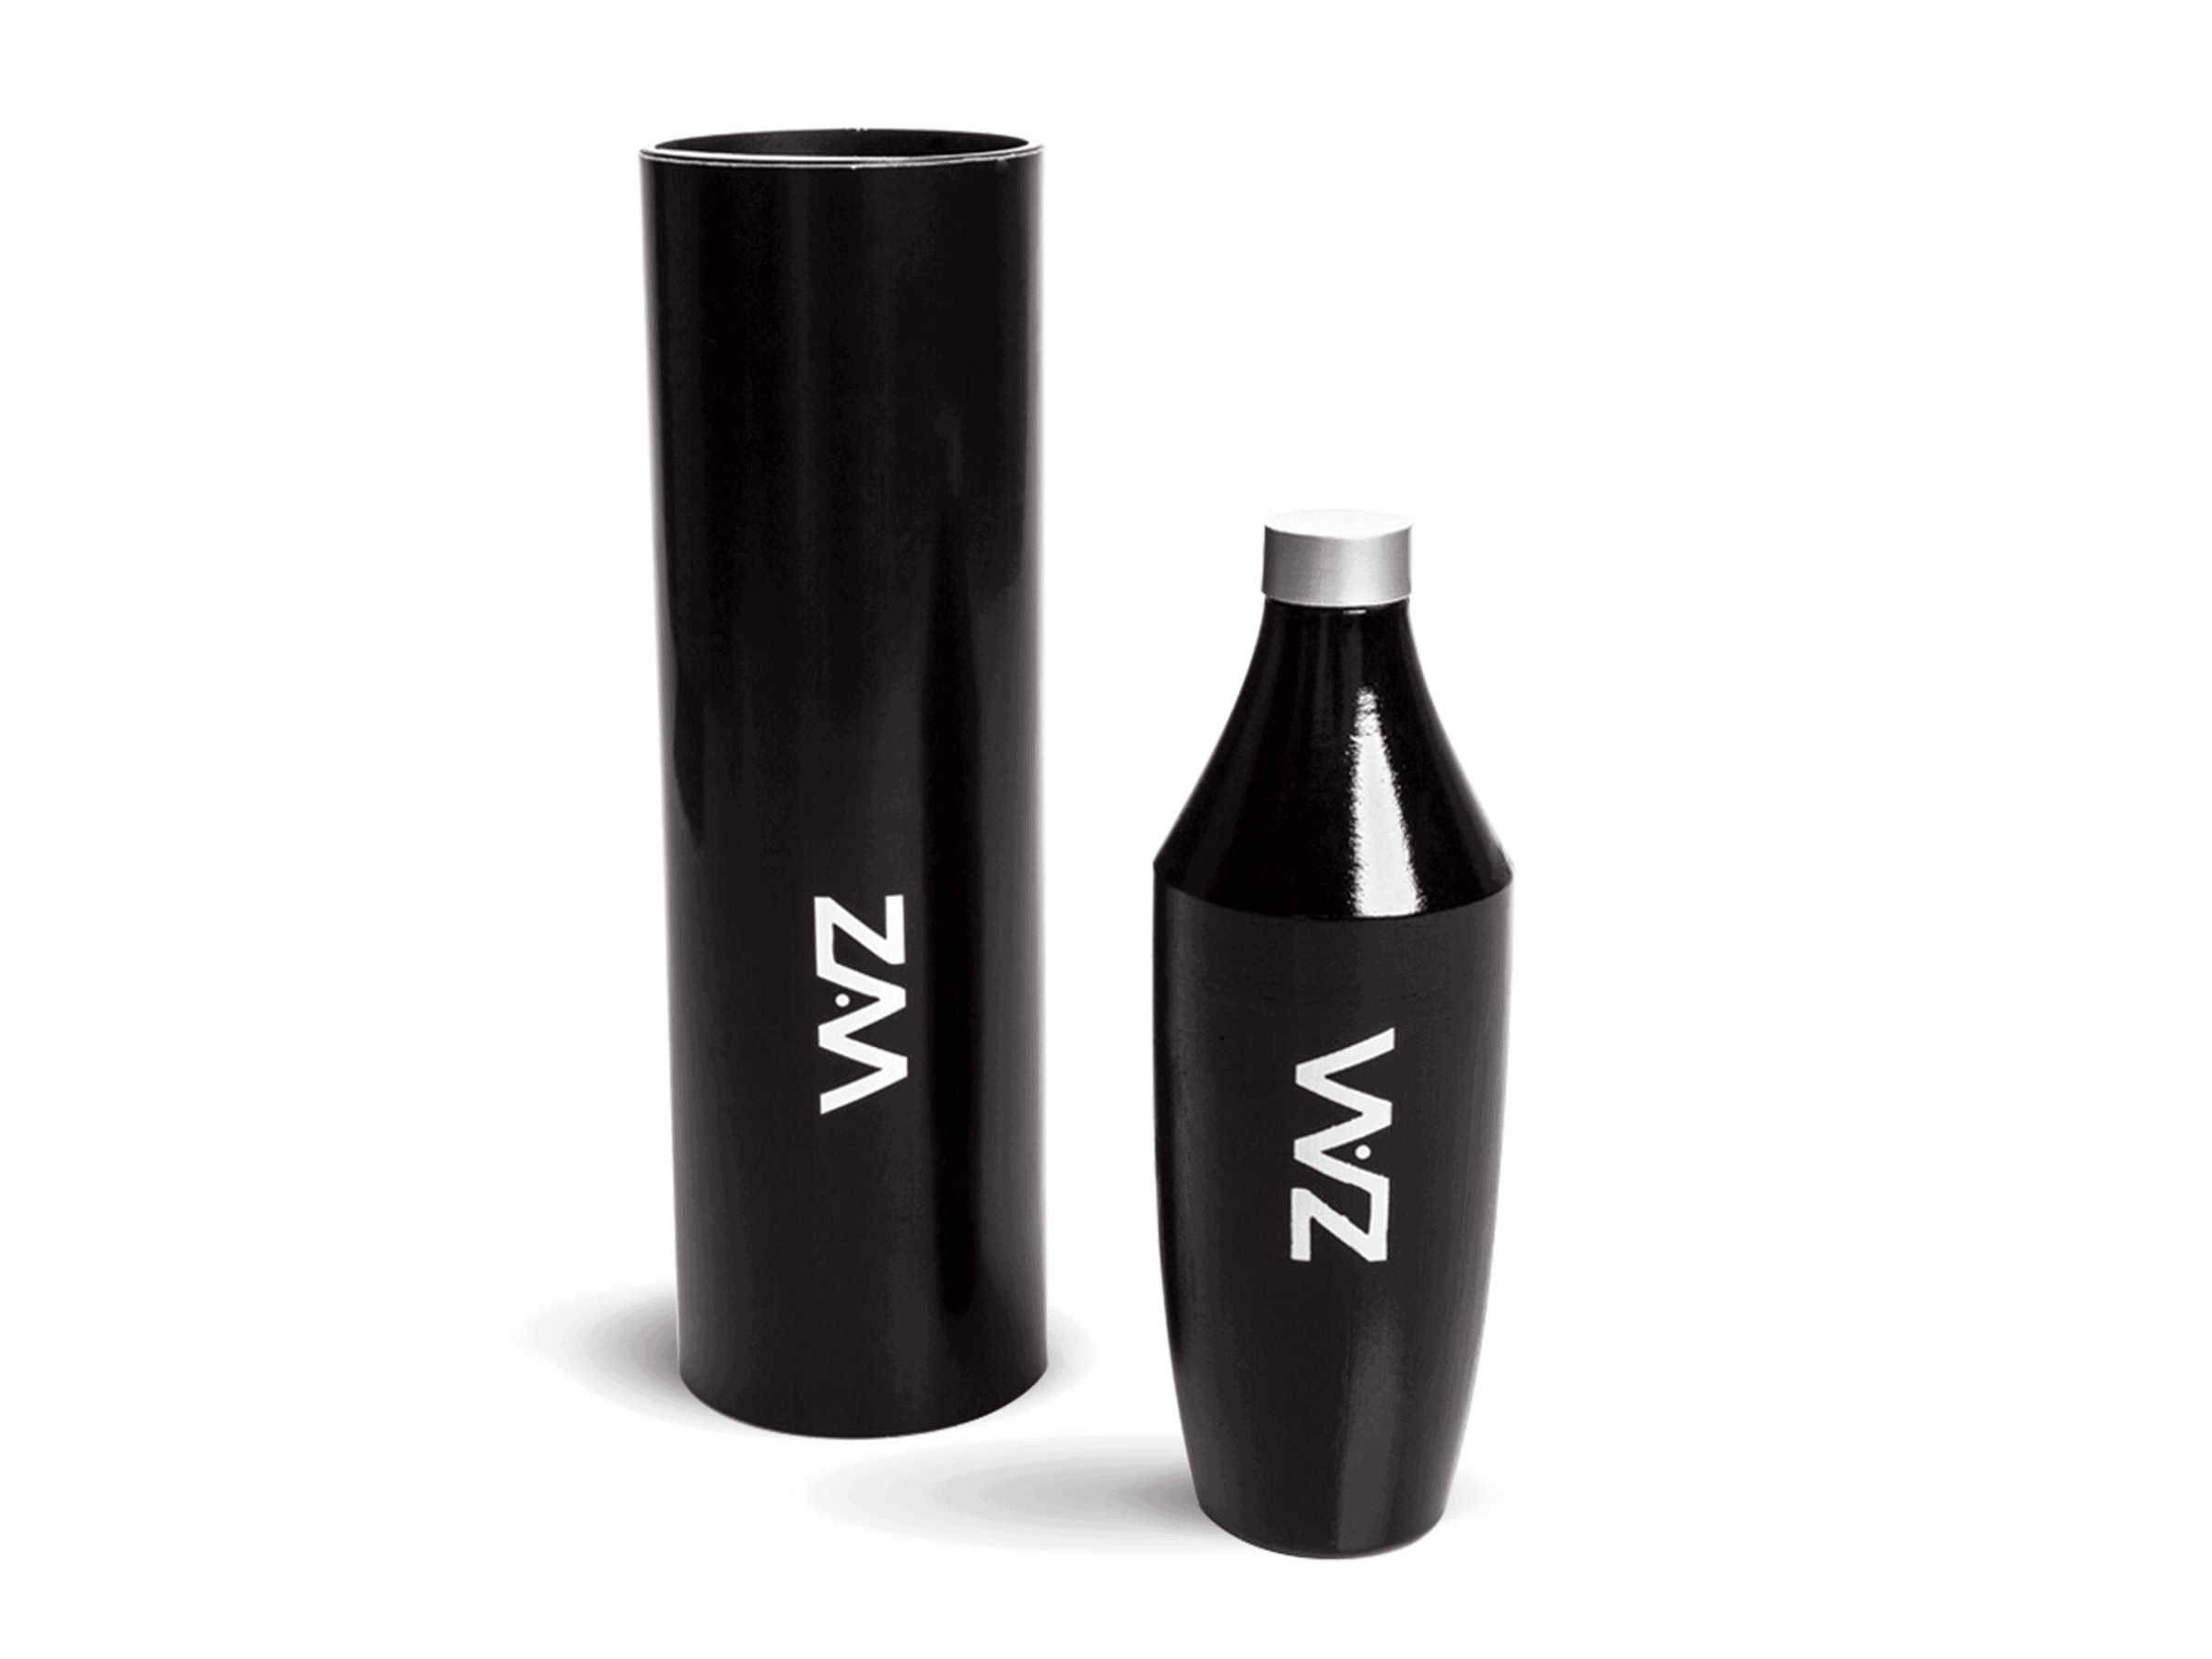 ZAM No1 Gipsmodell Verpackung Flasche